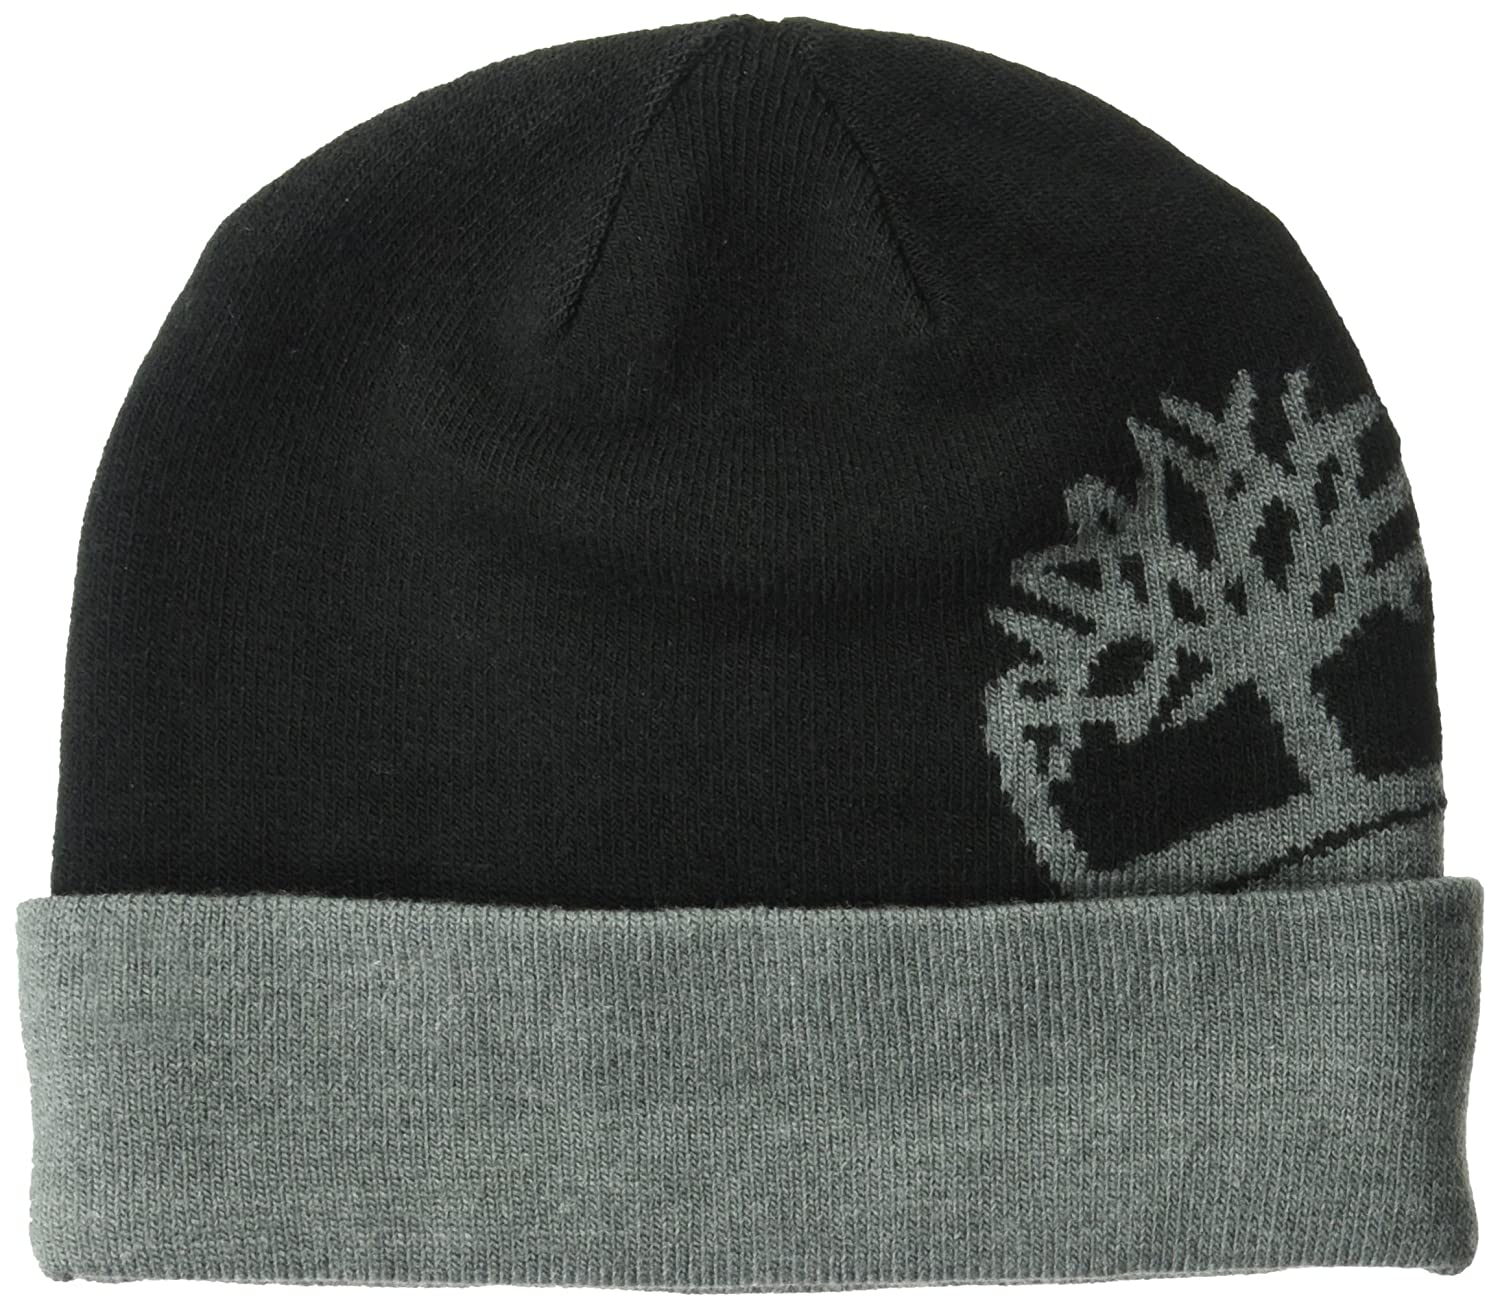 f41e229fcc1 Best Place To Get Beanies